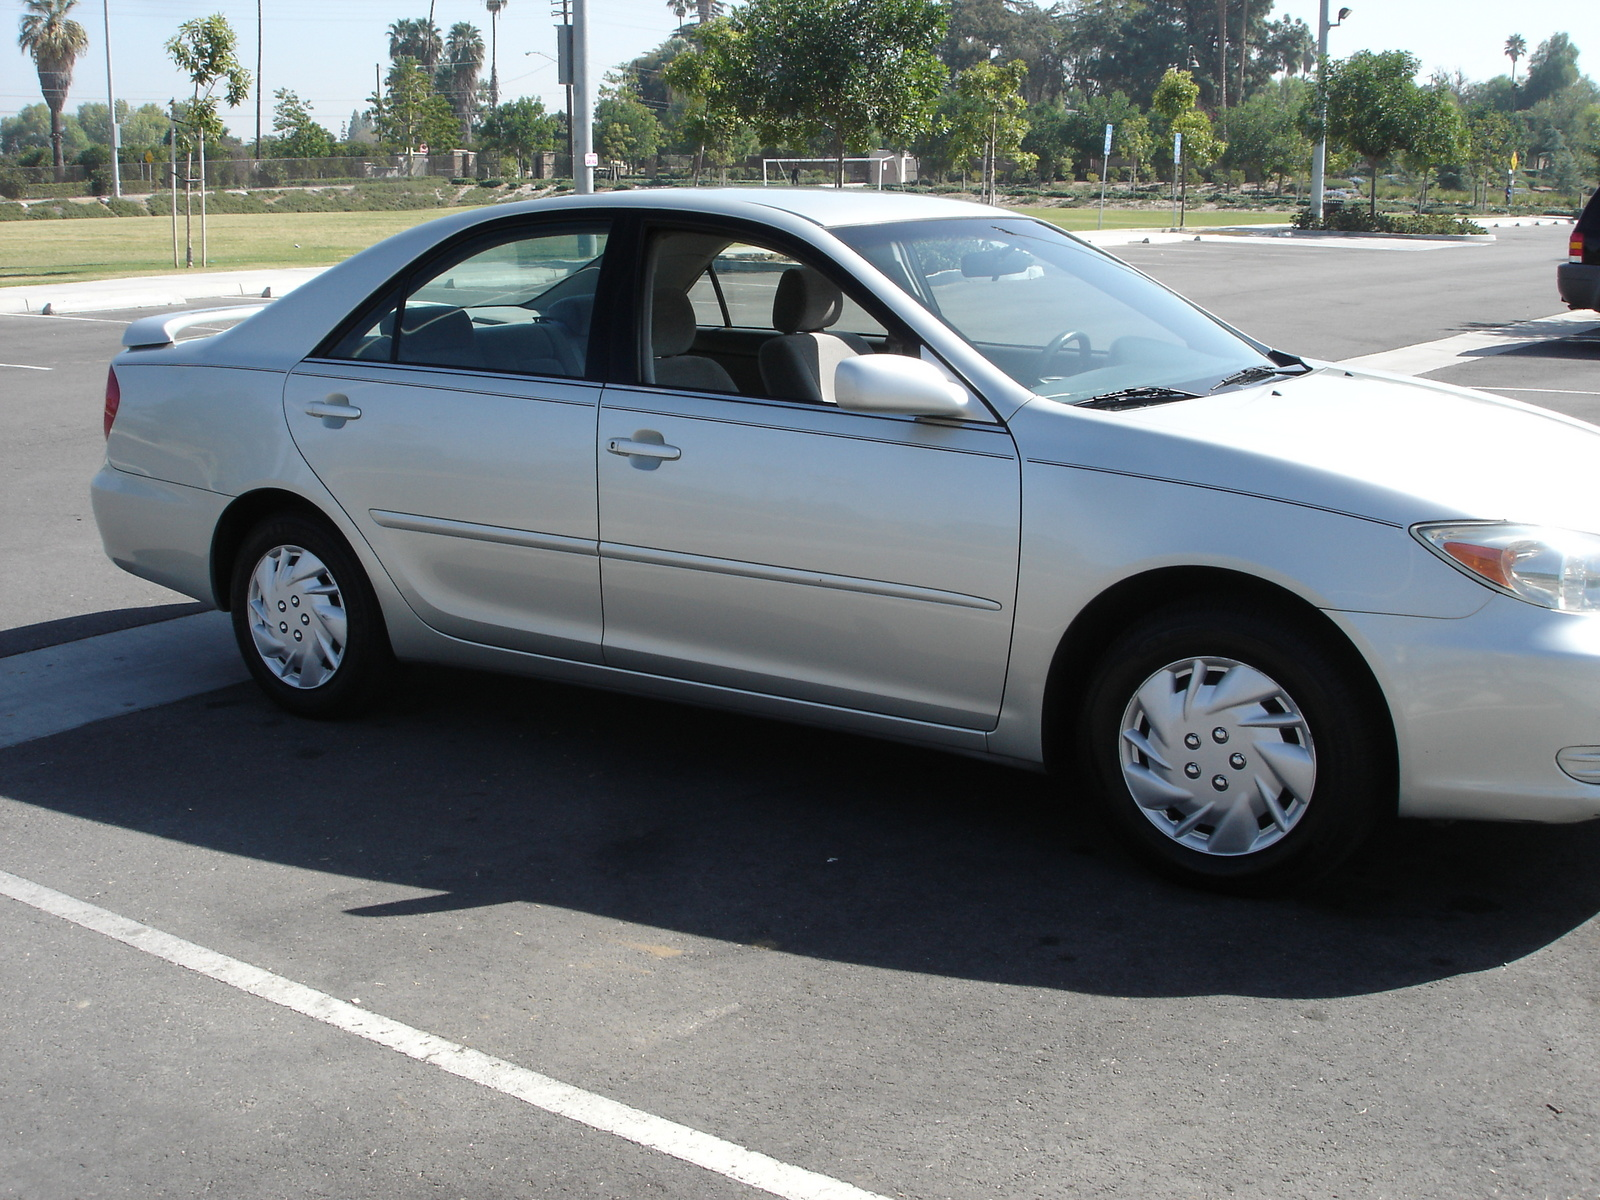 Picture of 2002... 2004 Camry Xle Reviews